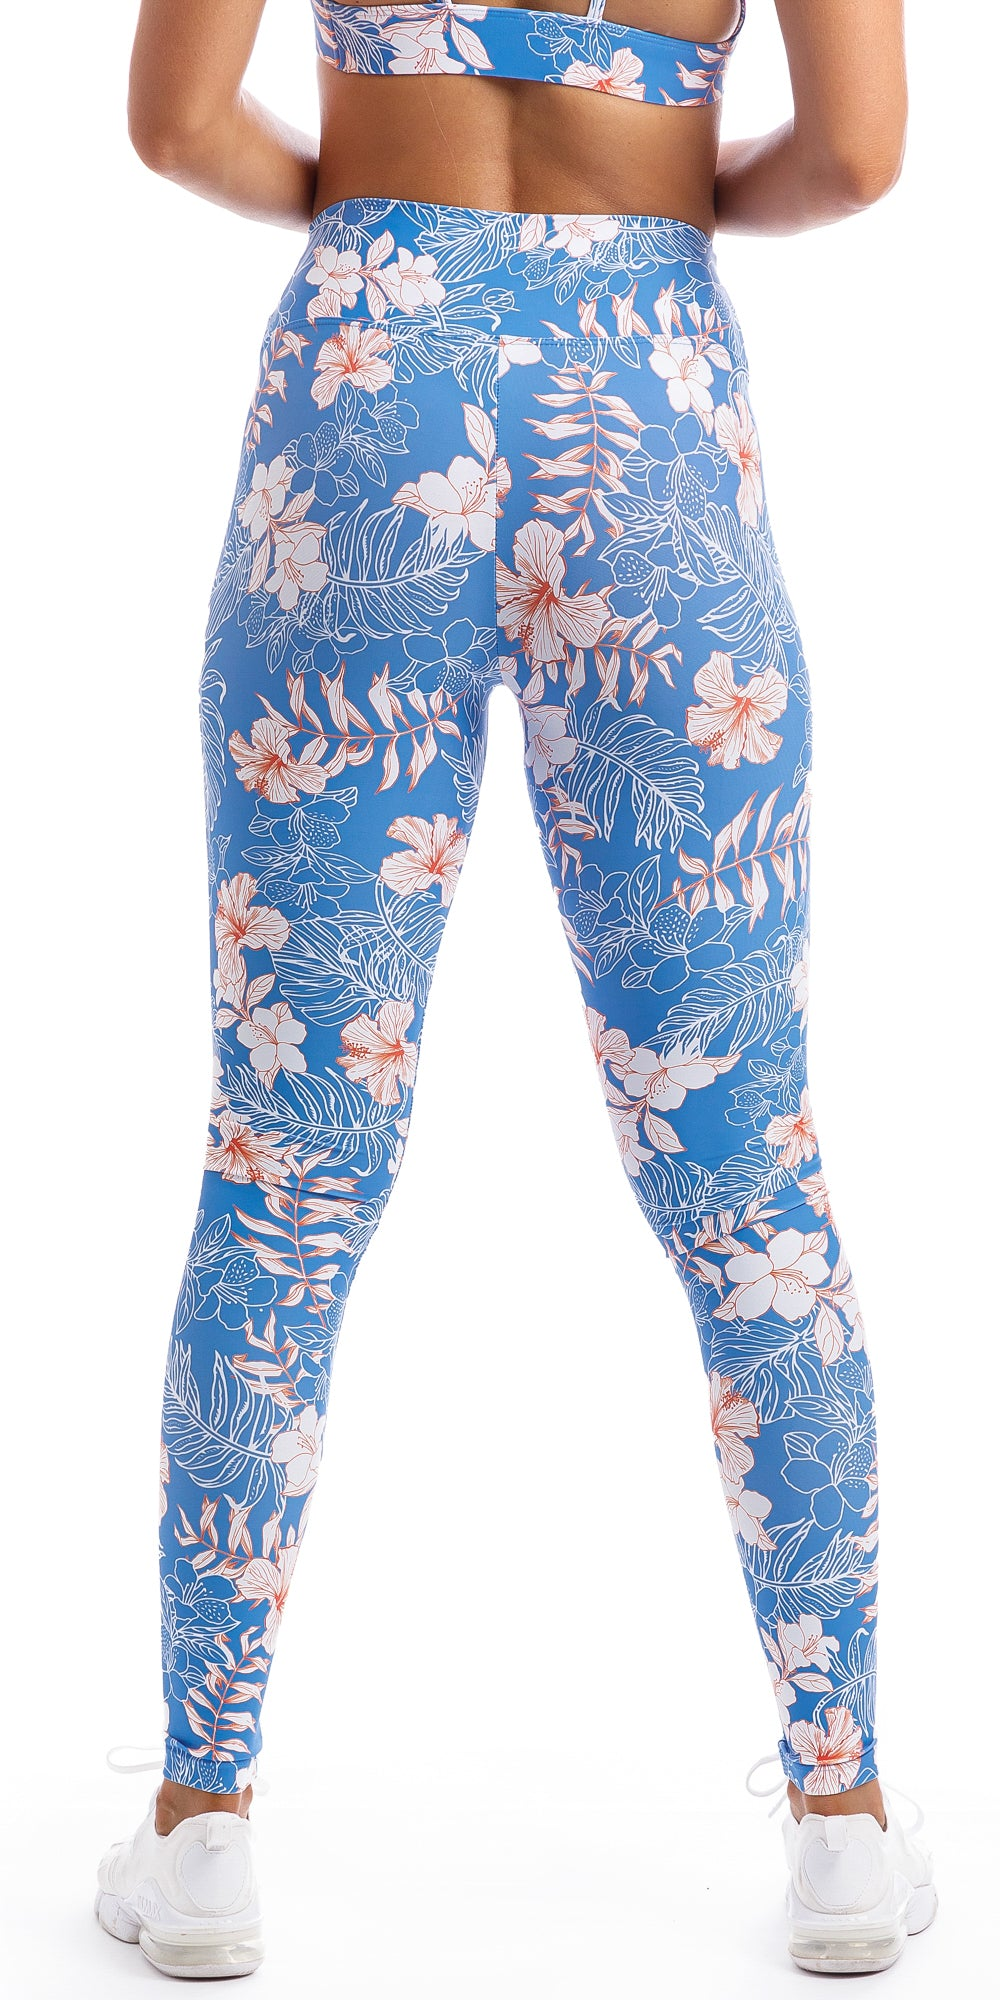 Rear view of lady wearing blue, white, pink floral Hibiscus Kiss print extra long leggings & matching diamond back bra